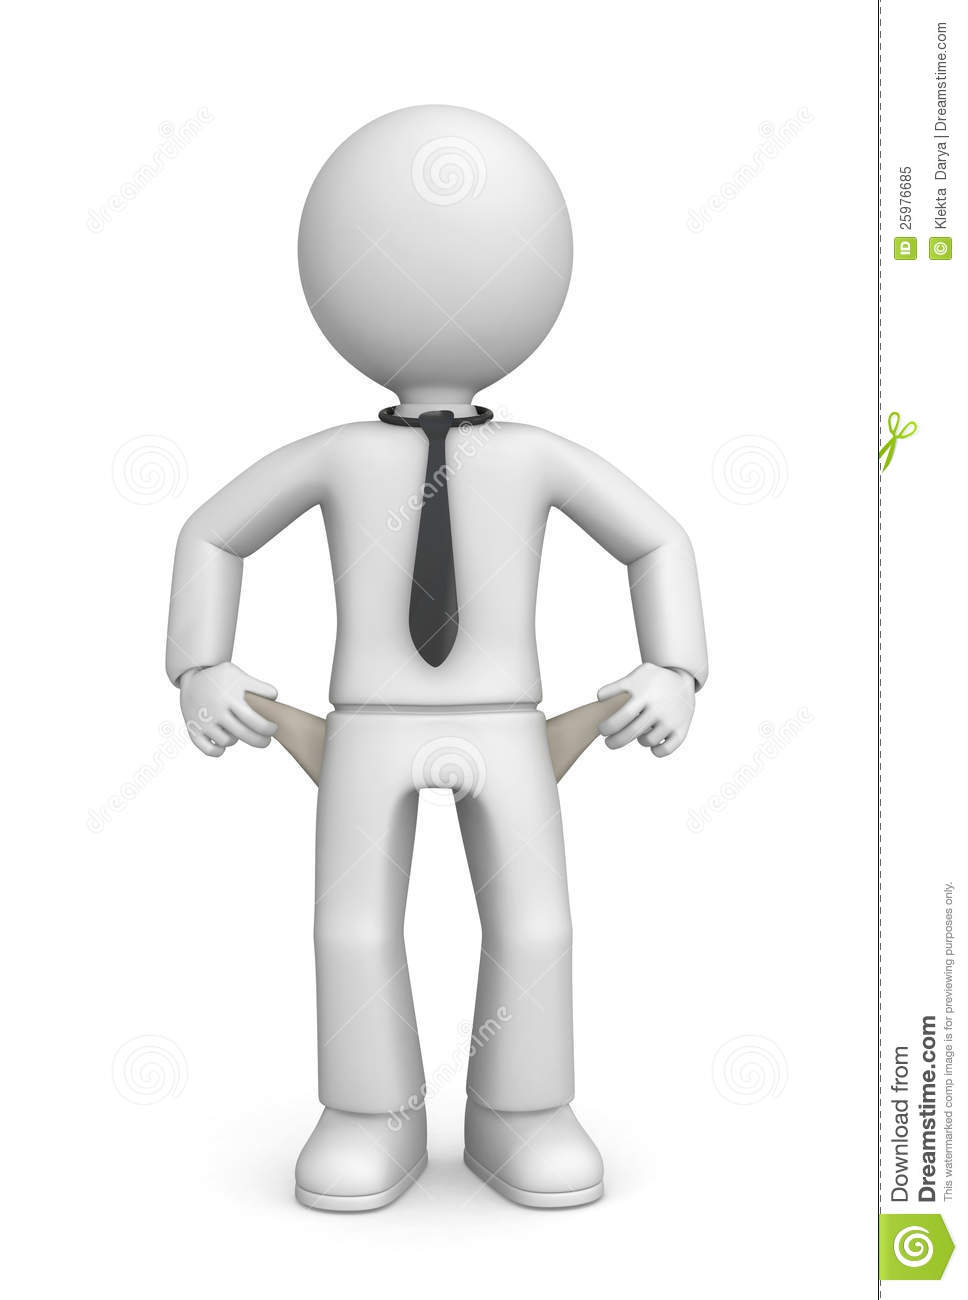 White faceless figure showing empty pockets and wearing a black tie. .